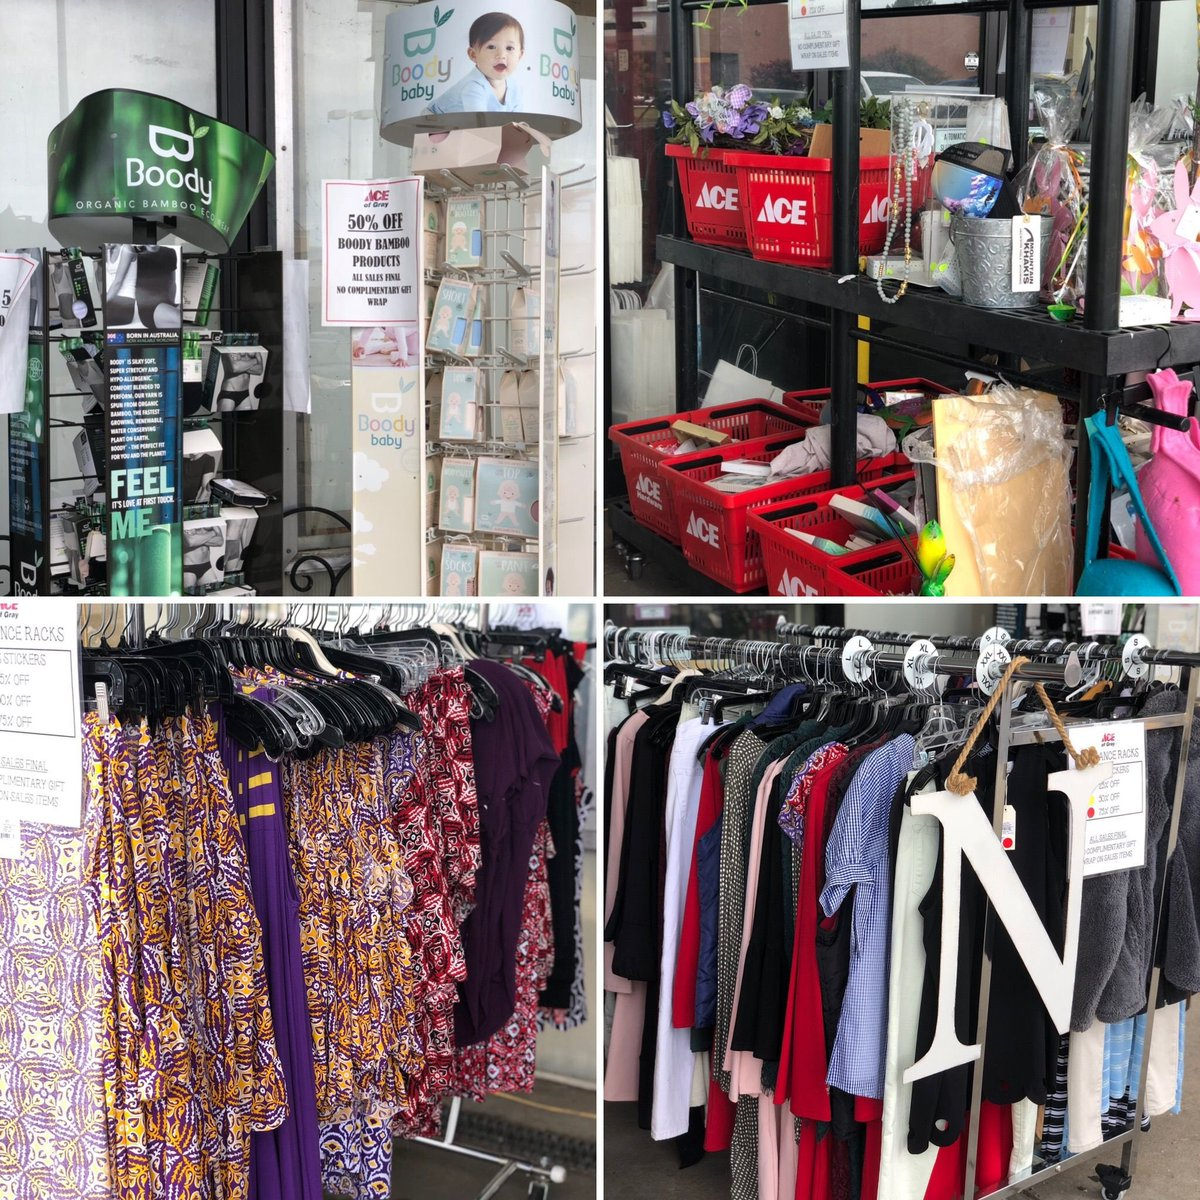 Stop by today and shop our #SidewalkSale Clearance Racks! We have a lot of great items added daily to these racks! All items are 25%, 50%, or 75% Off! #ShopAceofGray #Sales #Clearance #AddedDaily #AceStyles #Summer #Winter #Everyseason #AllSalesFinal